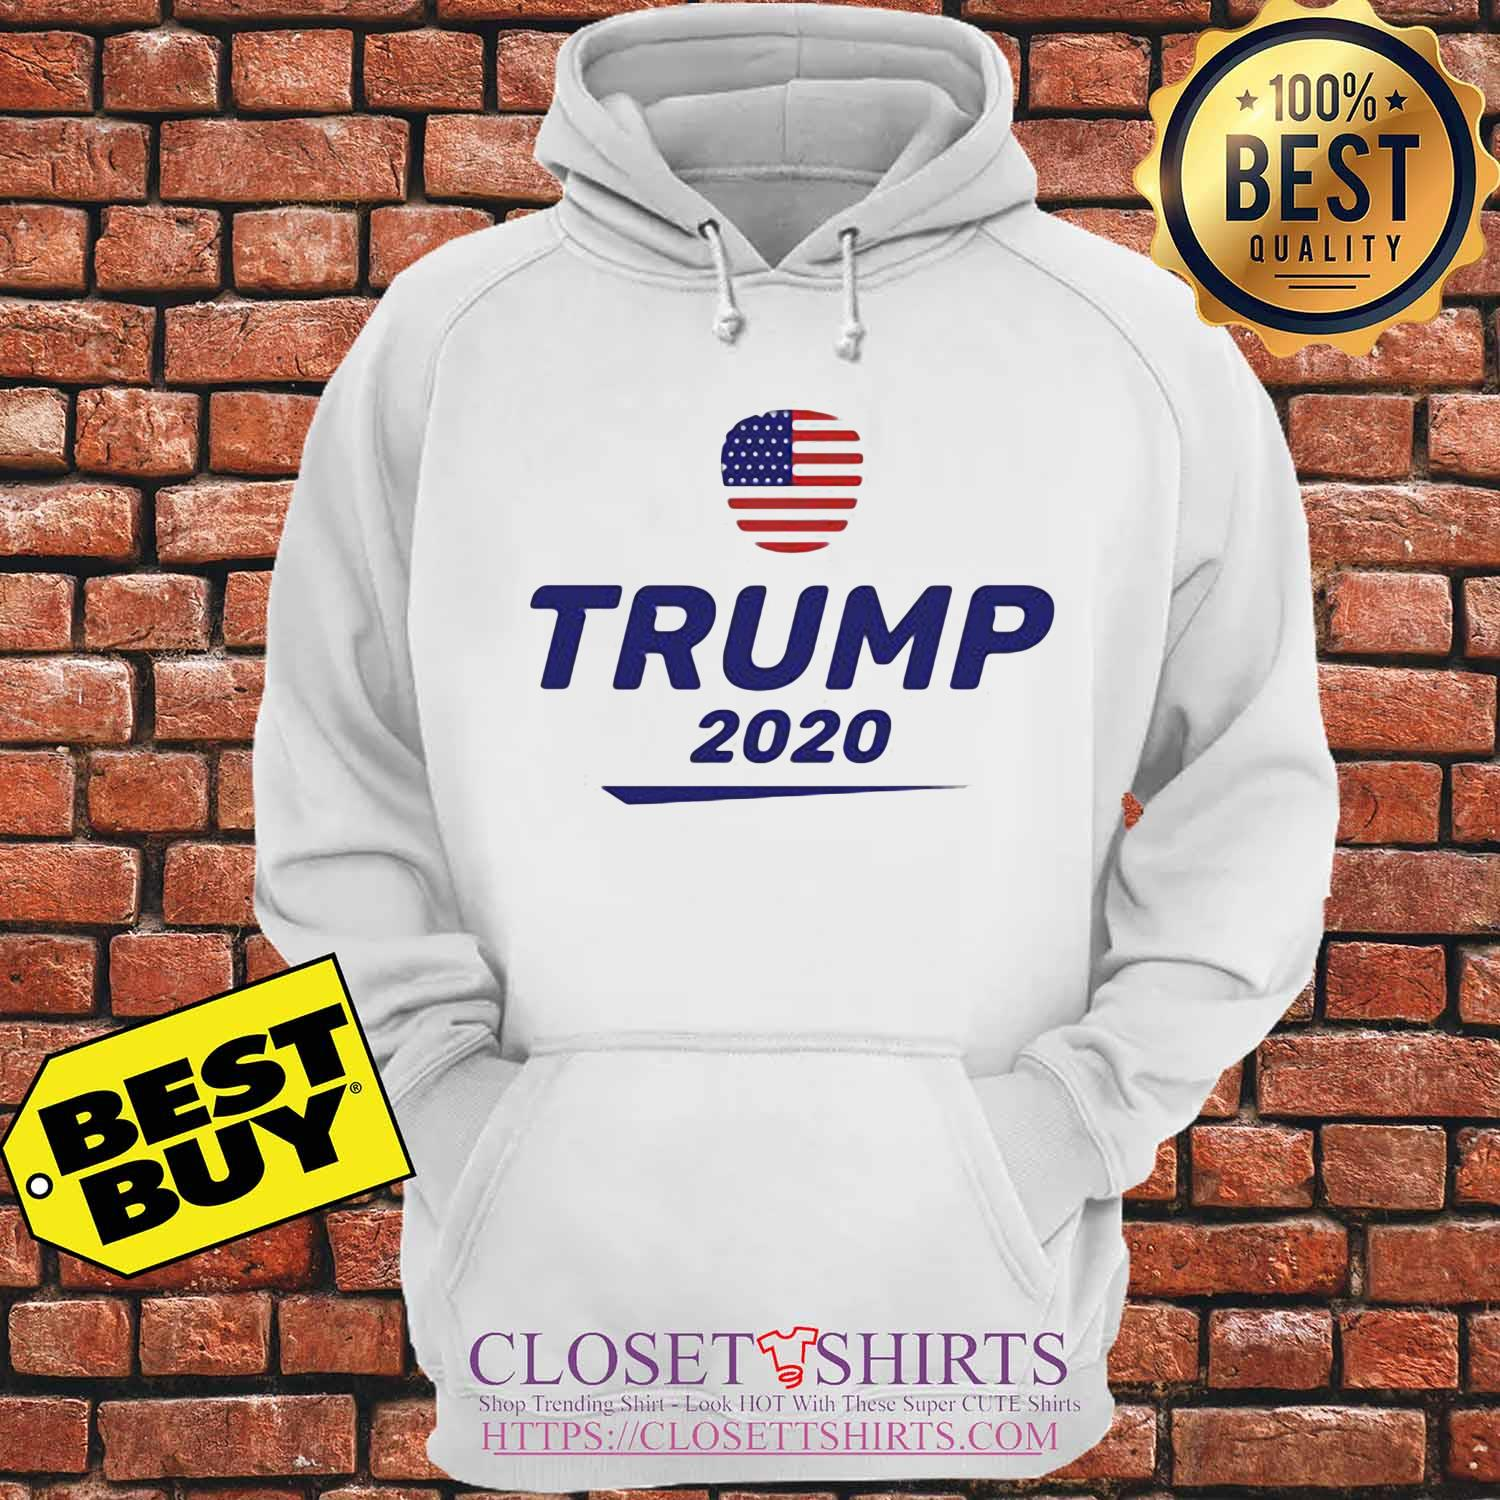 This unique Trump 2020 The us American flag s Hoodie